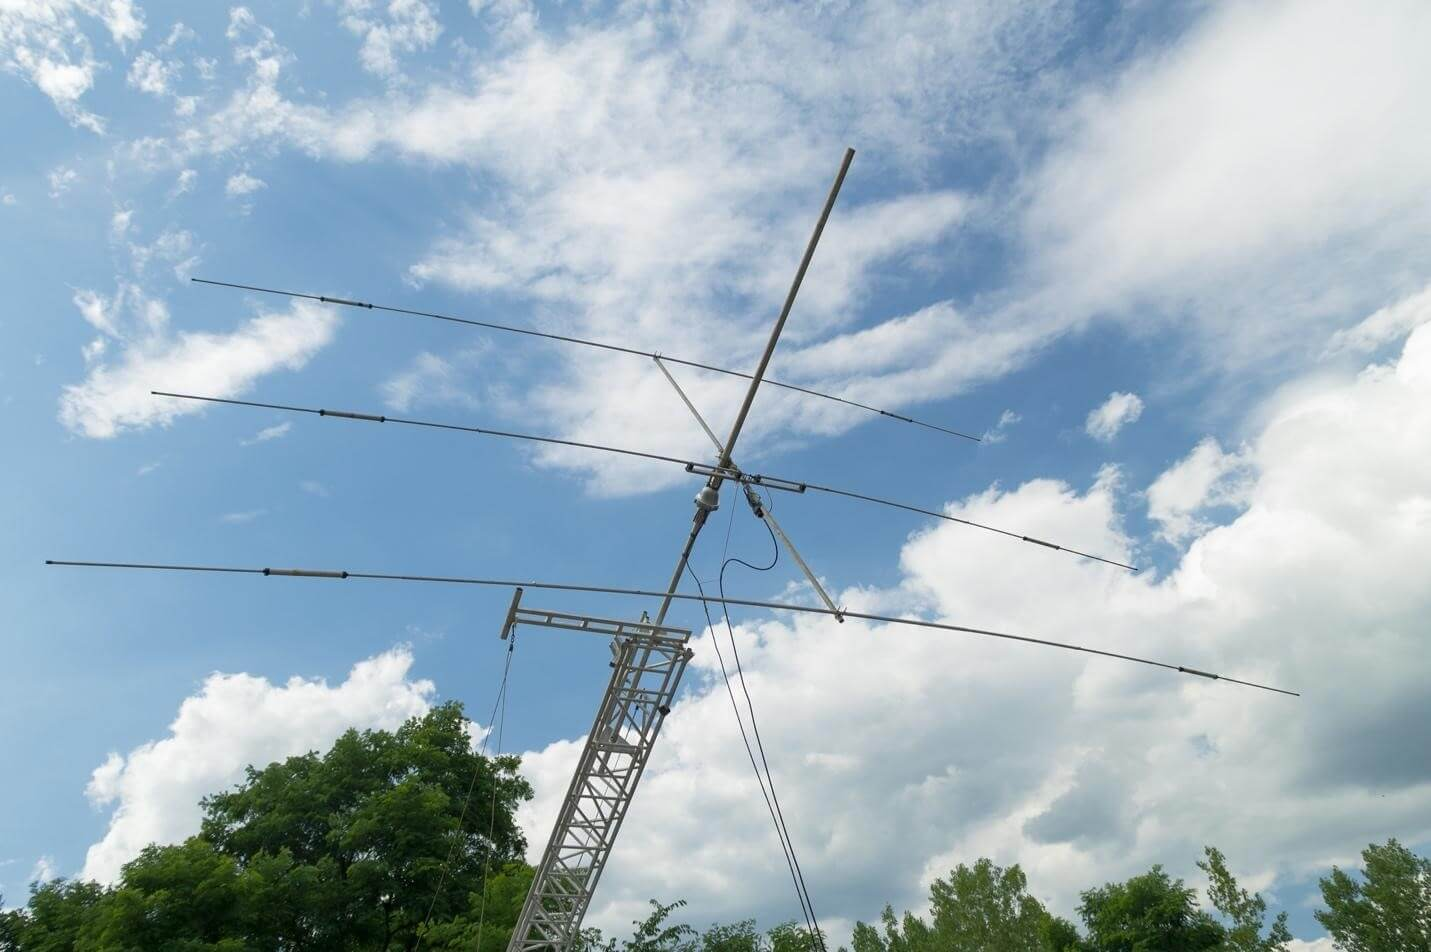 Amateur radio antennas allow long-distance communication without cell towers or internet.